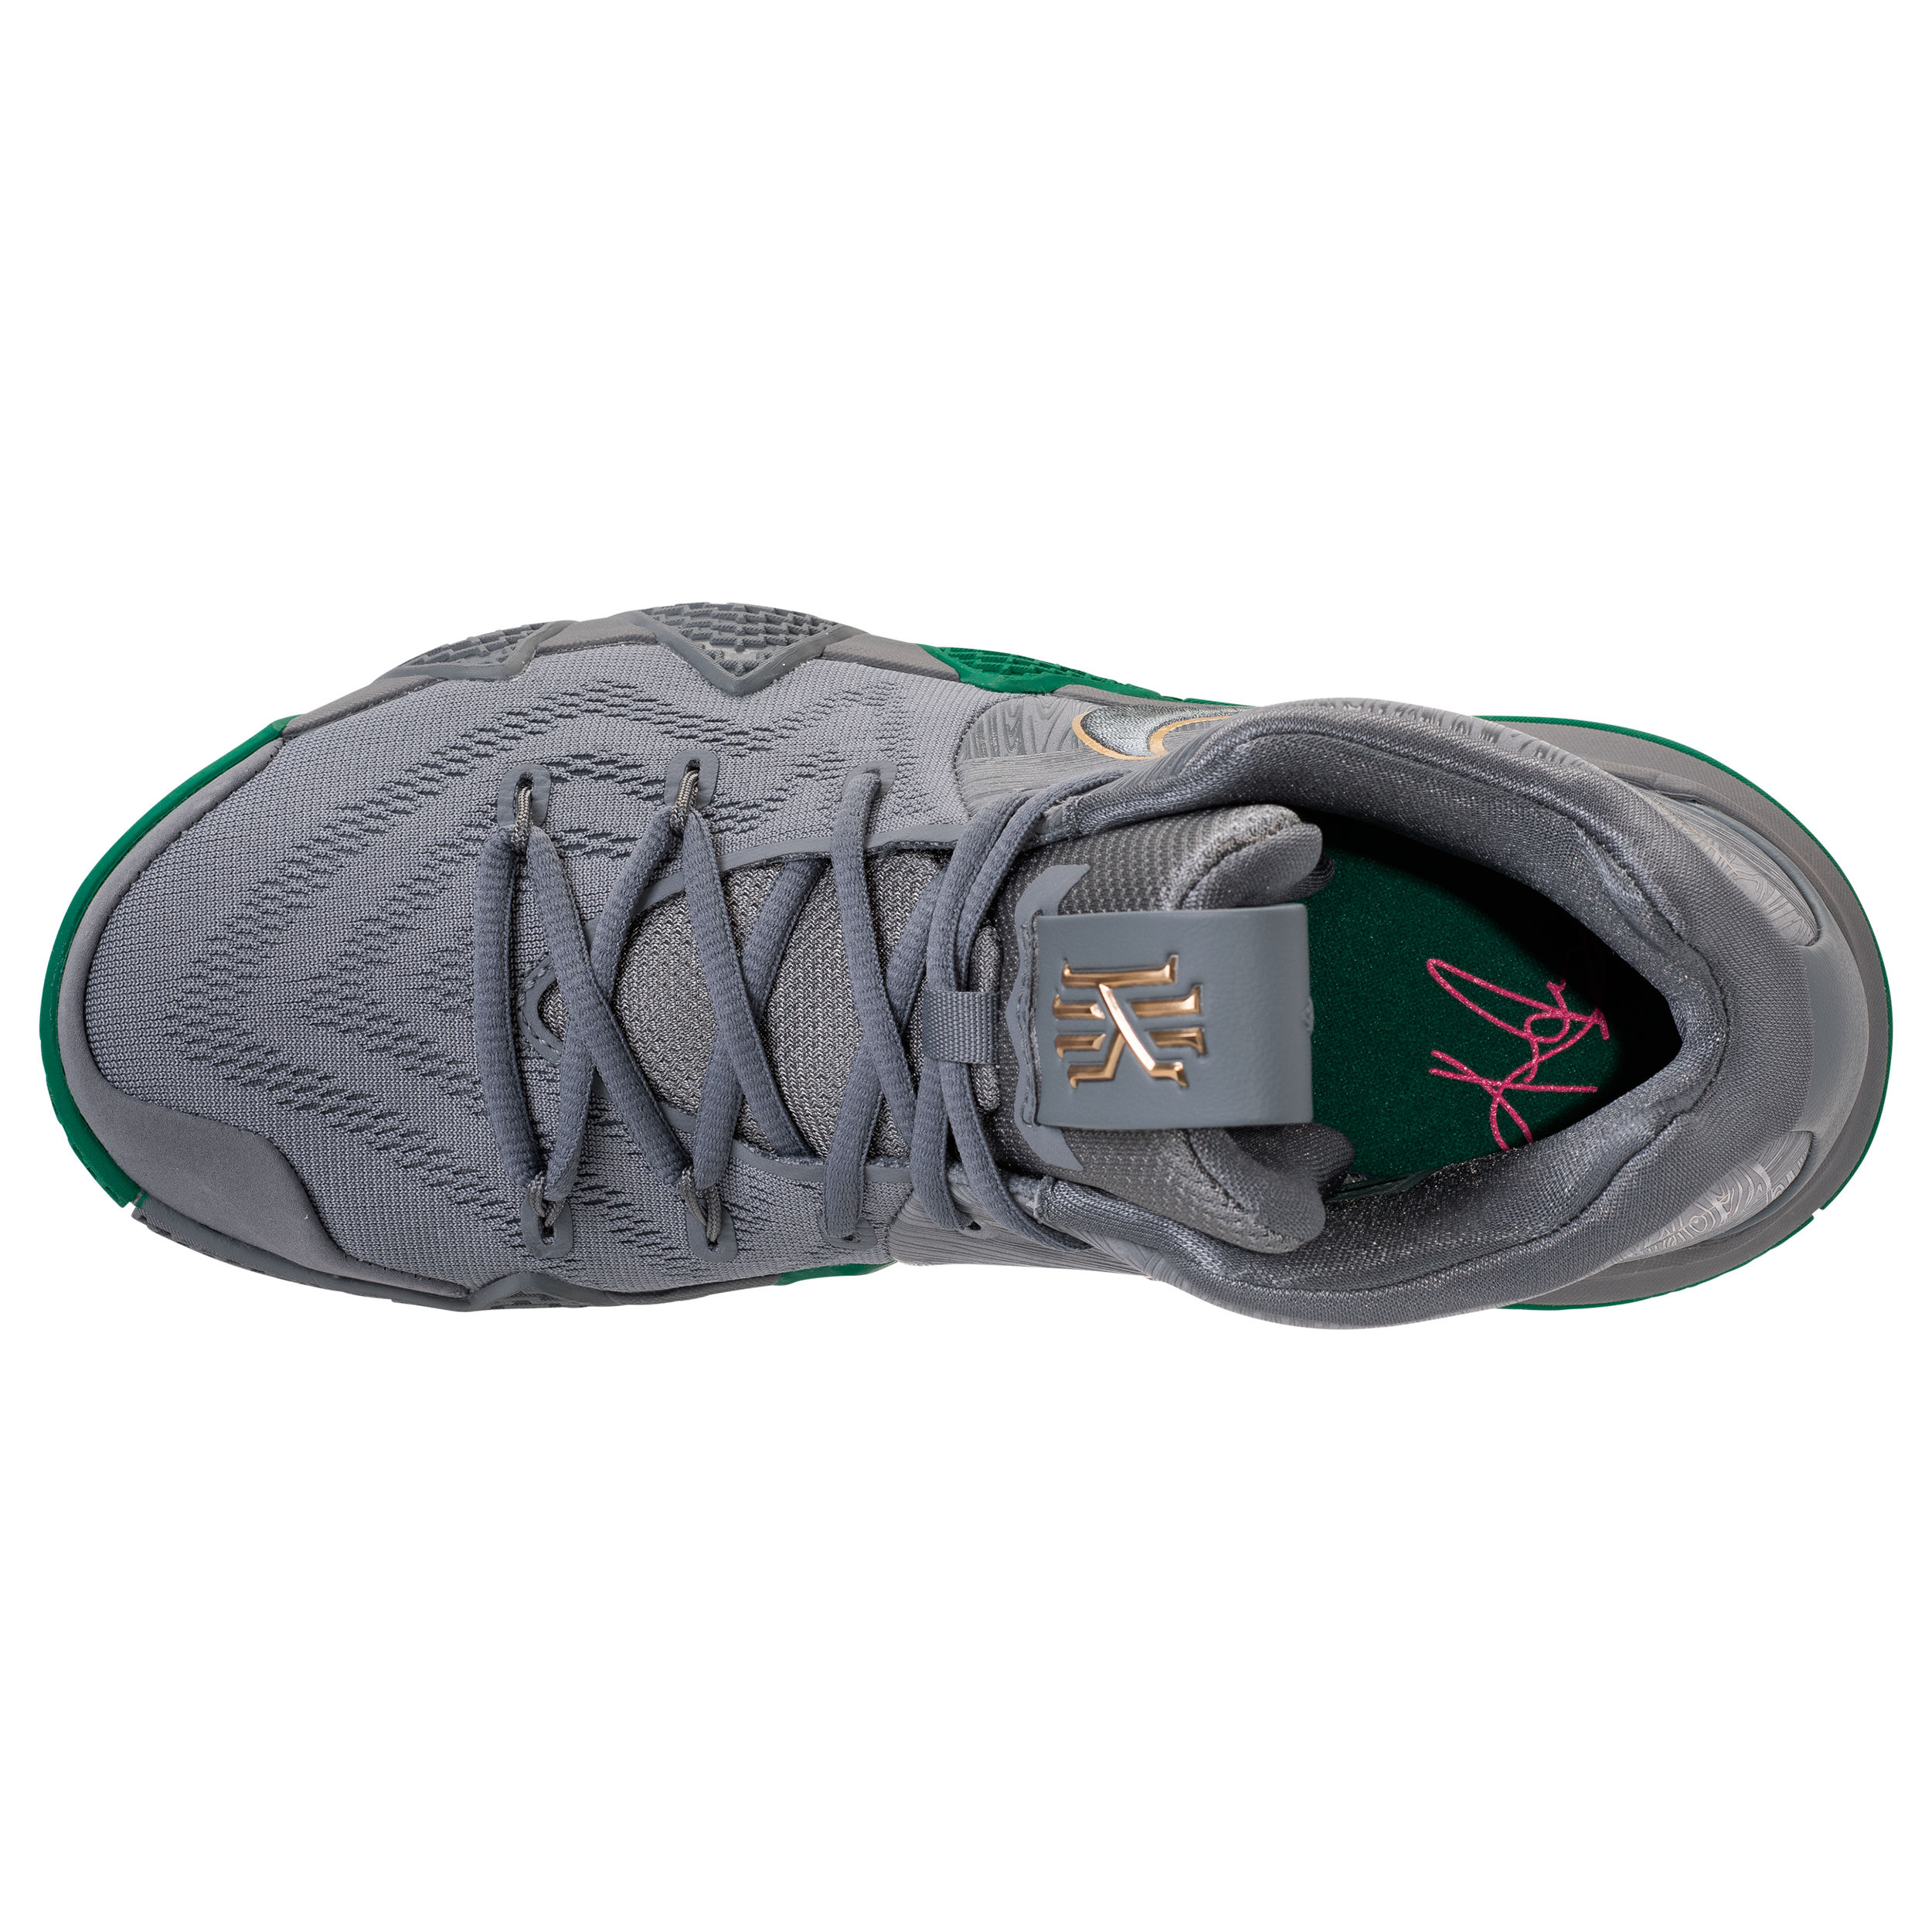 best service 92056 ff8ba The Nike Kyrie 4 'City of Guardians' Releases Next Week at ...